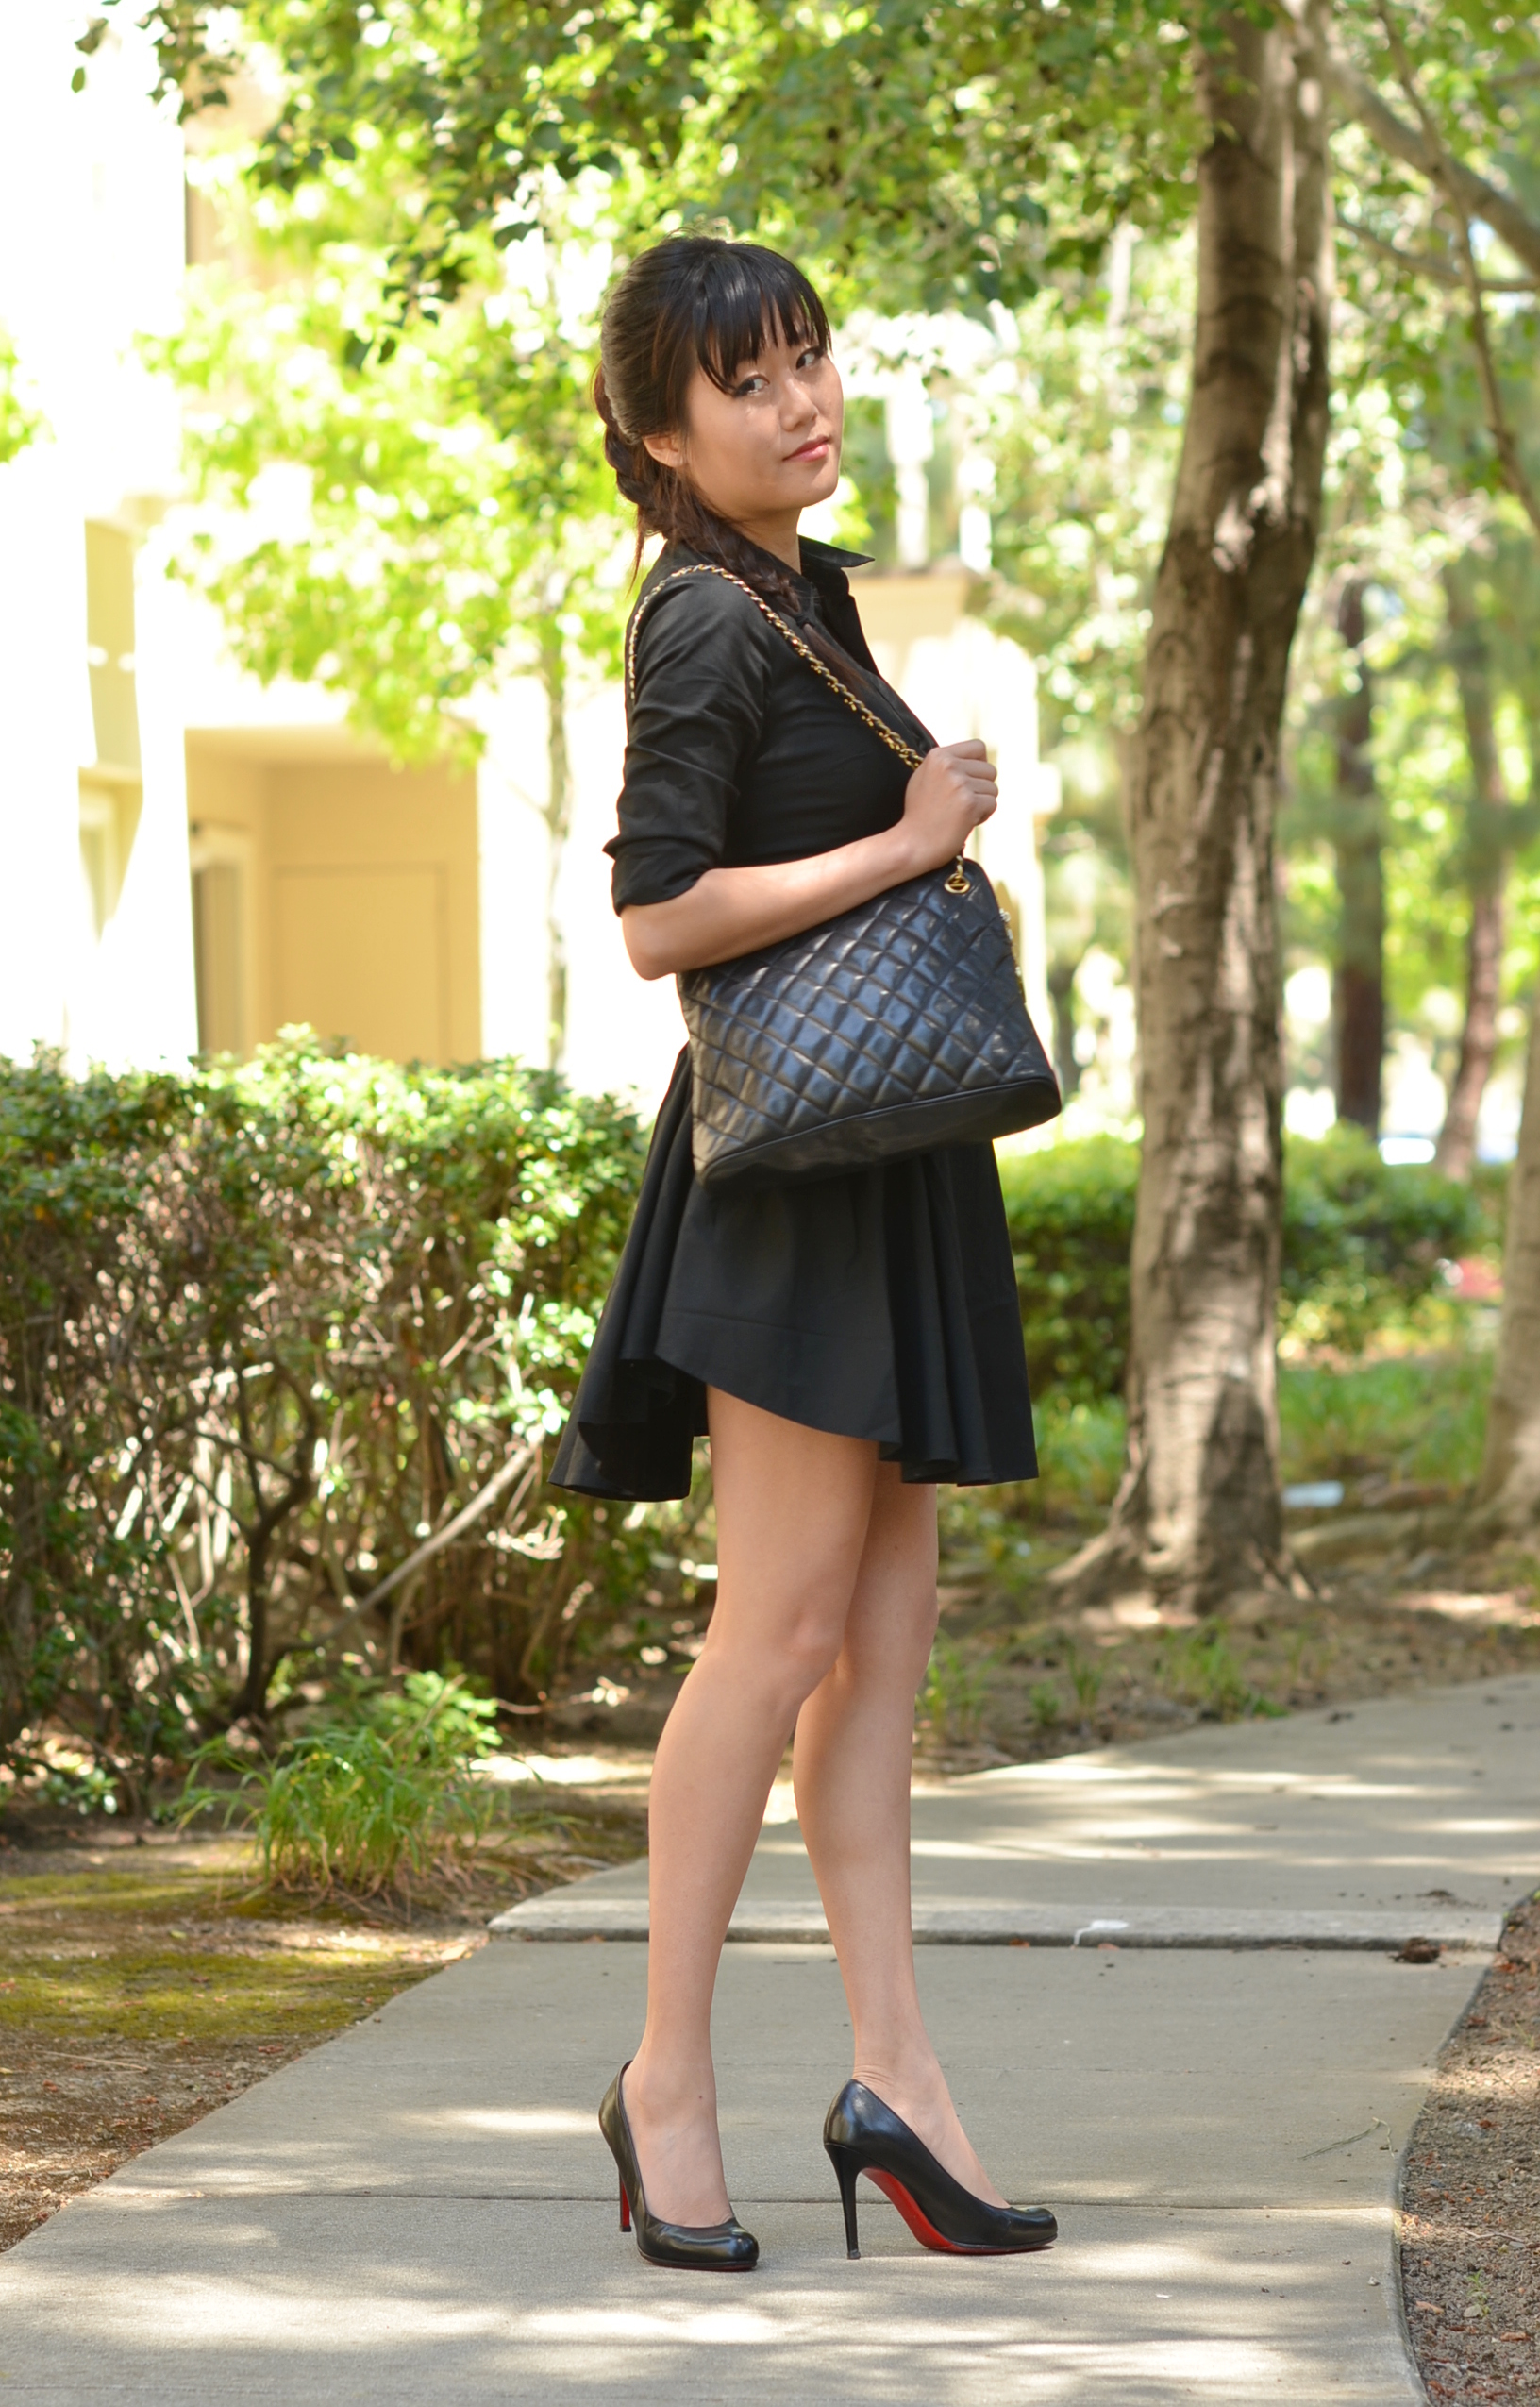 all black outfit wearing chanel bag and christian louboutin simple 100 pumps heels shoes